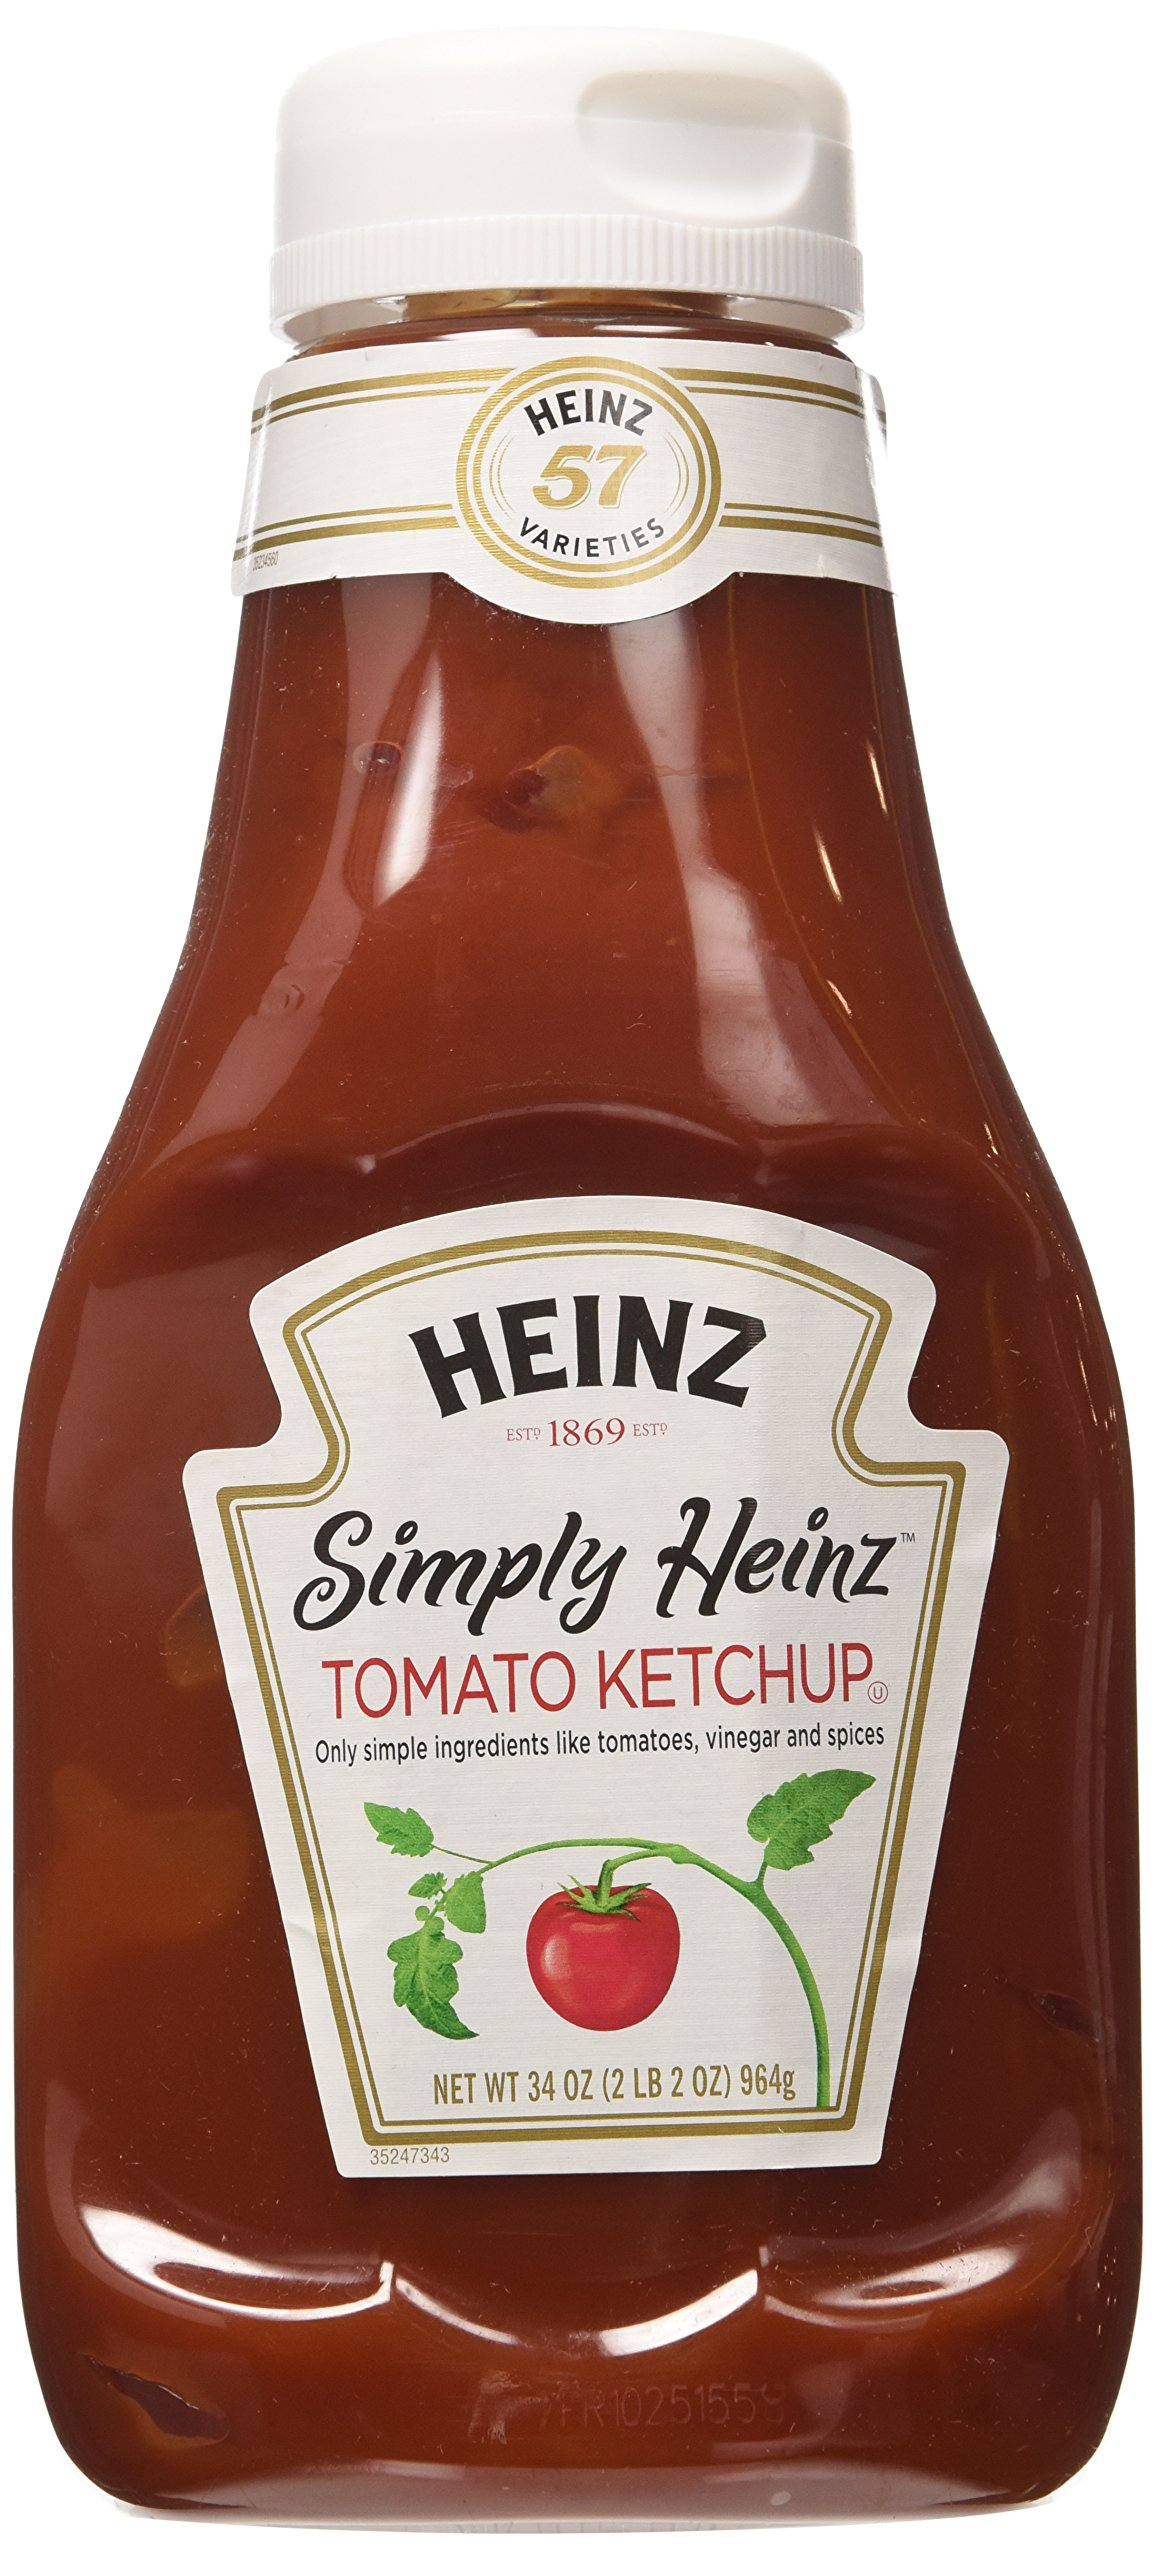 Simply Heinz Tomato Ketchup - 2 Bottles, 34 Oz. Each Bottle